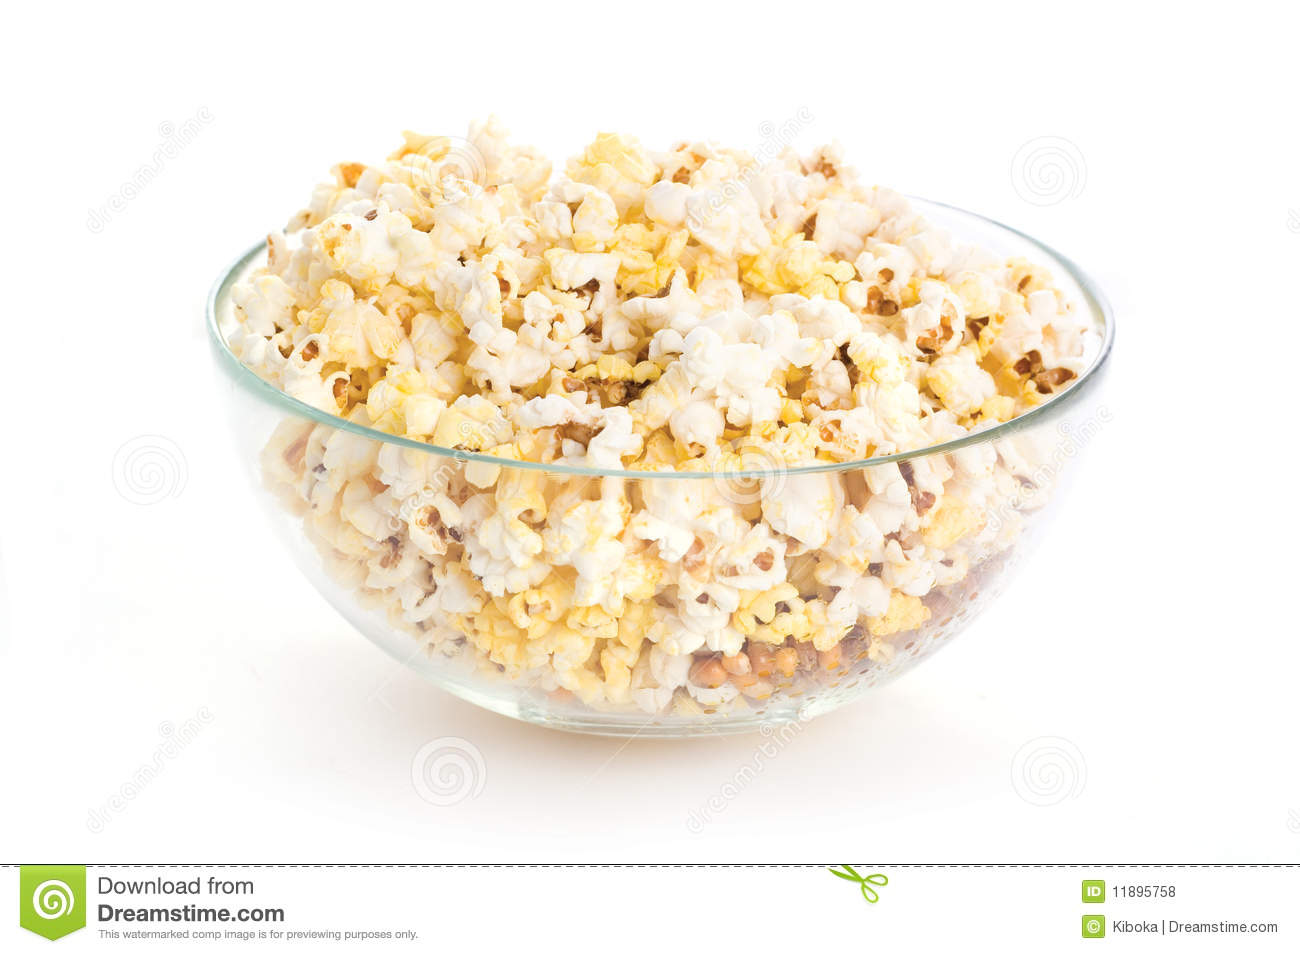 Popcorn Bowl Clipart Bowl Of Popcorn Isolated On